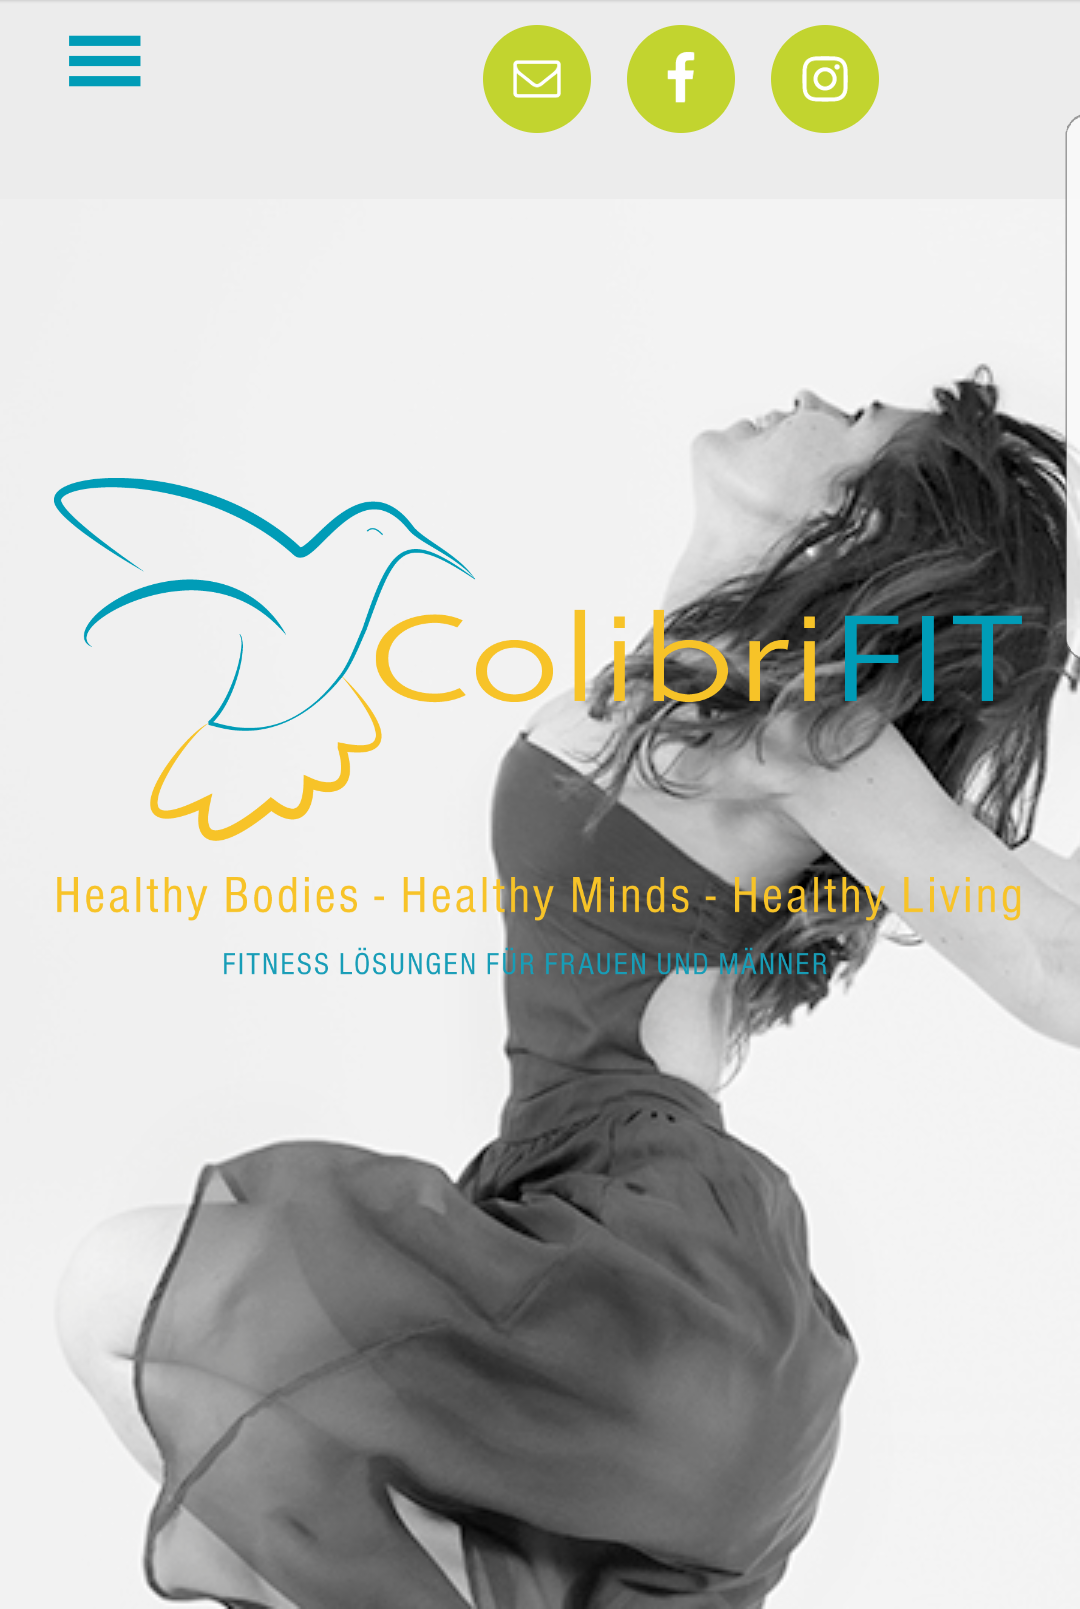 ColibriFIT Website Design by Social52.ch